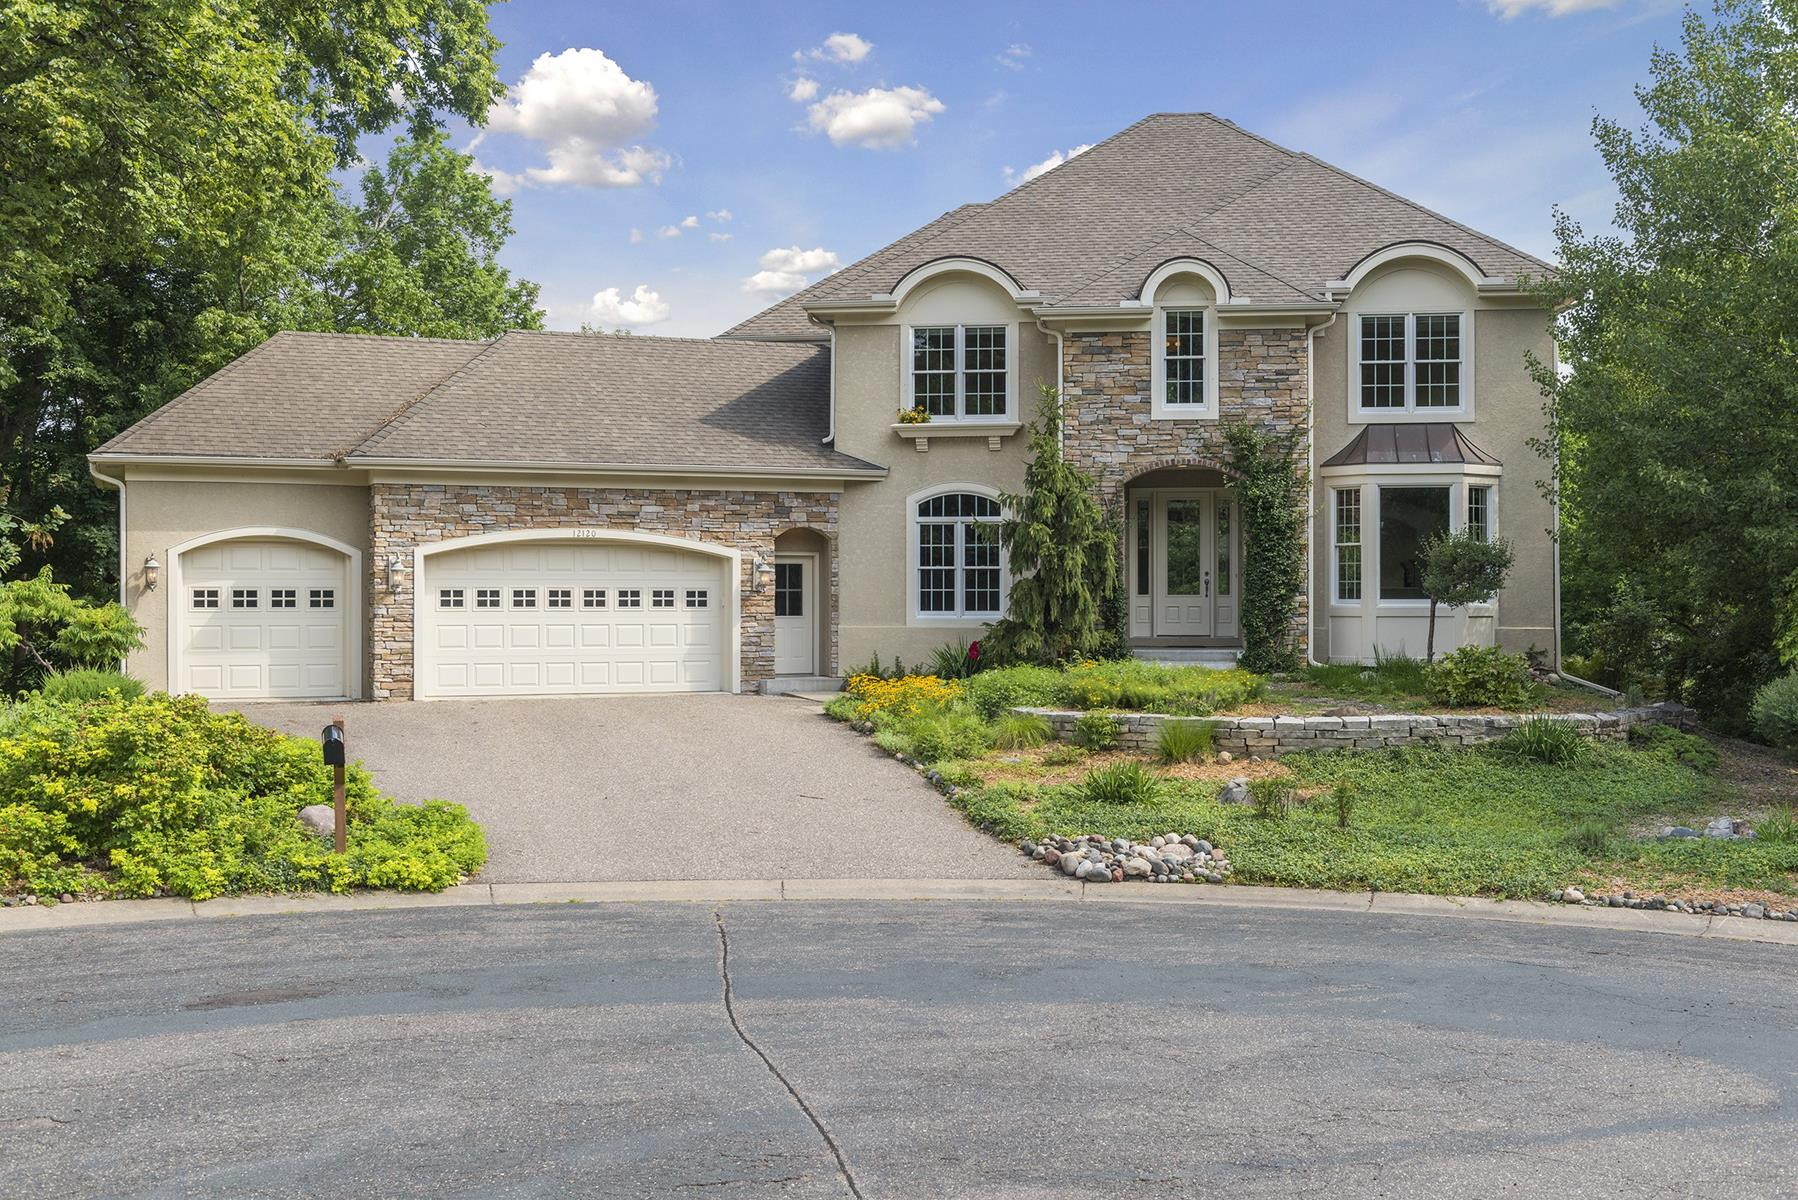 Single Family Home for Sale at 12120 18th Place N Plymouth, Minnesota, 55441 United States